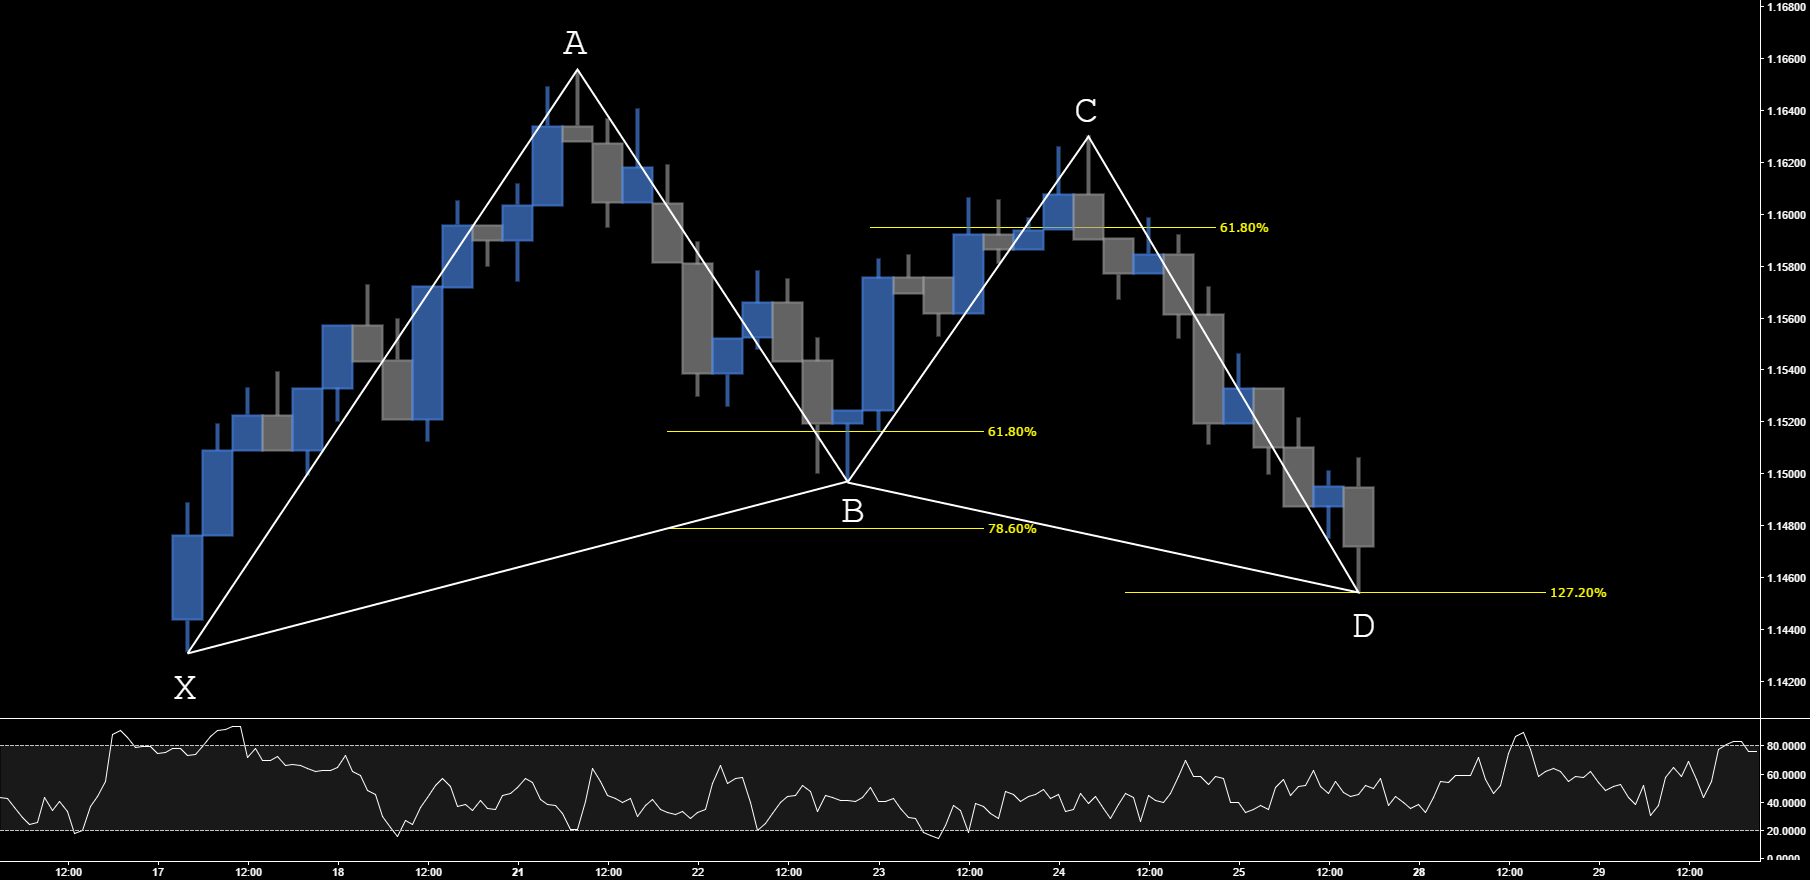 LEARN TO TRADE THE GARTLEY PATTERN IN 5 EASY STEPS